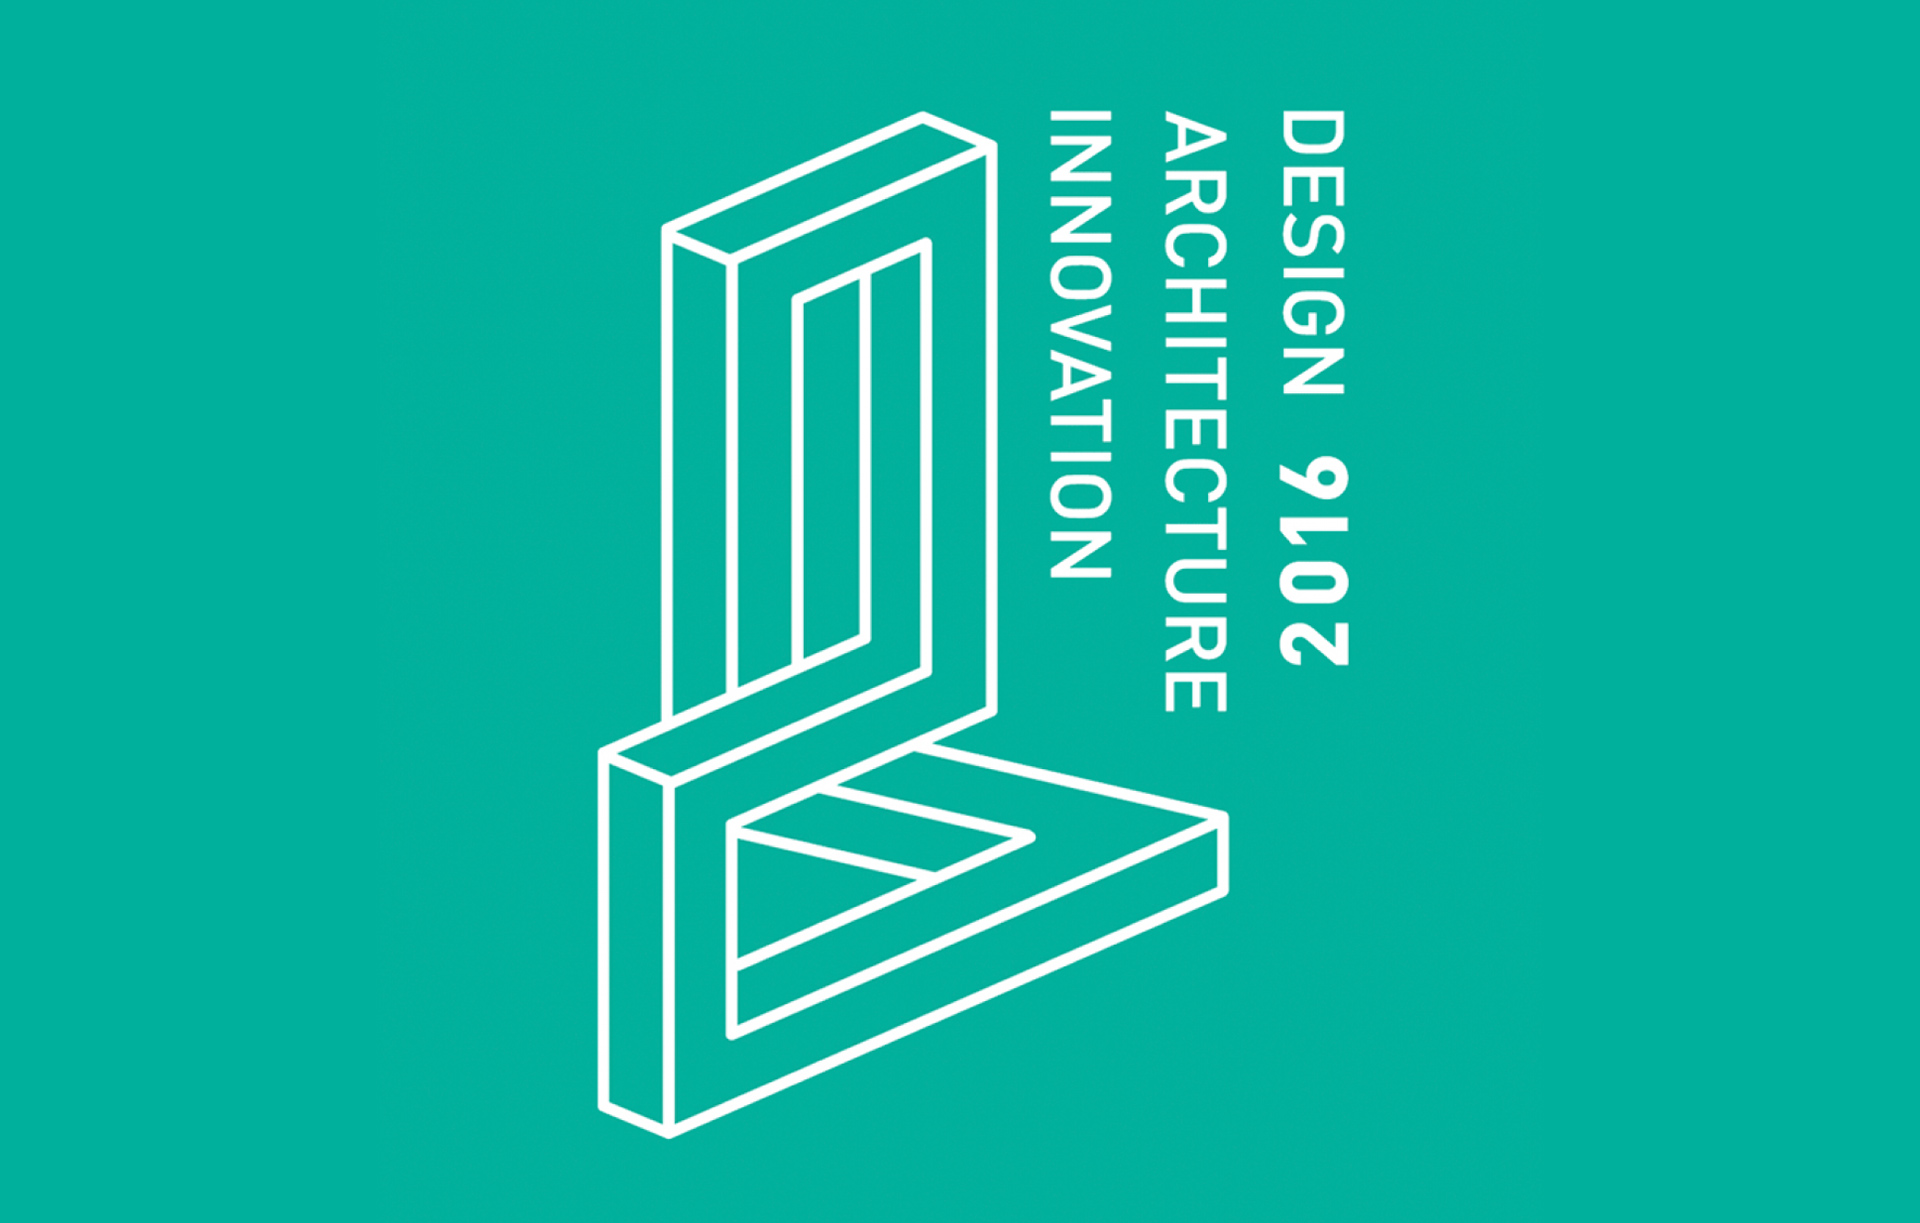 Logo for the Year of Innovation, architecture and design